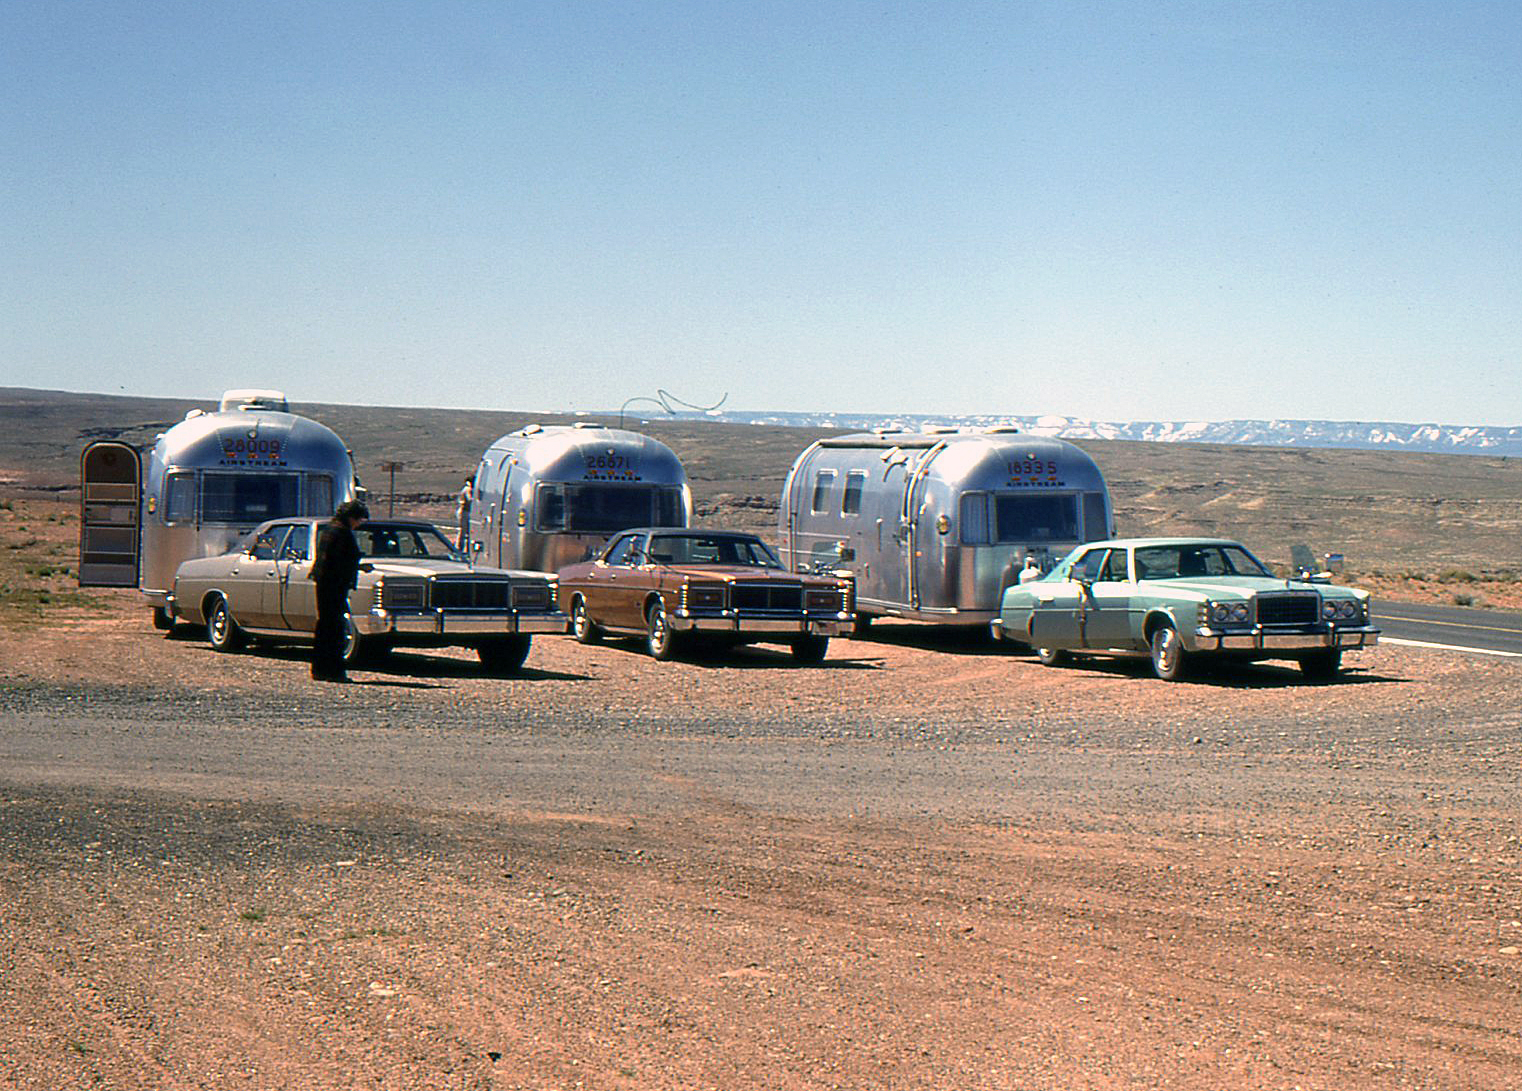 Airstream Base Camp Sale http://www.freeblueprints.net/1970-airstream-floor-plan-rv-basecamp-for-sale-craigslist-/karenbarr.files.wordpress.com*2010*02*airstream-1979.jpg/